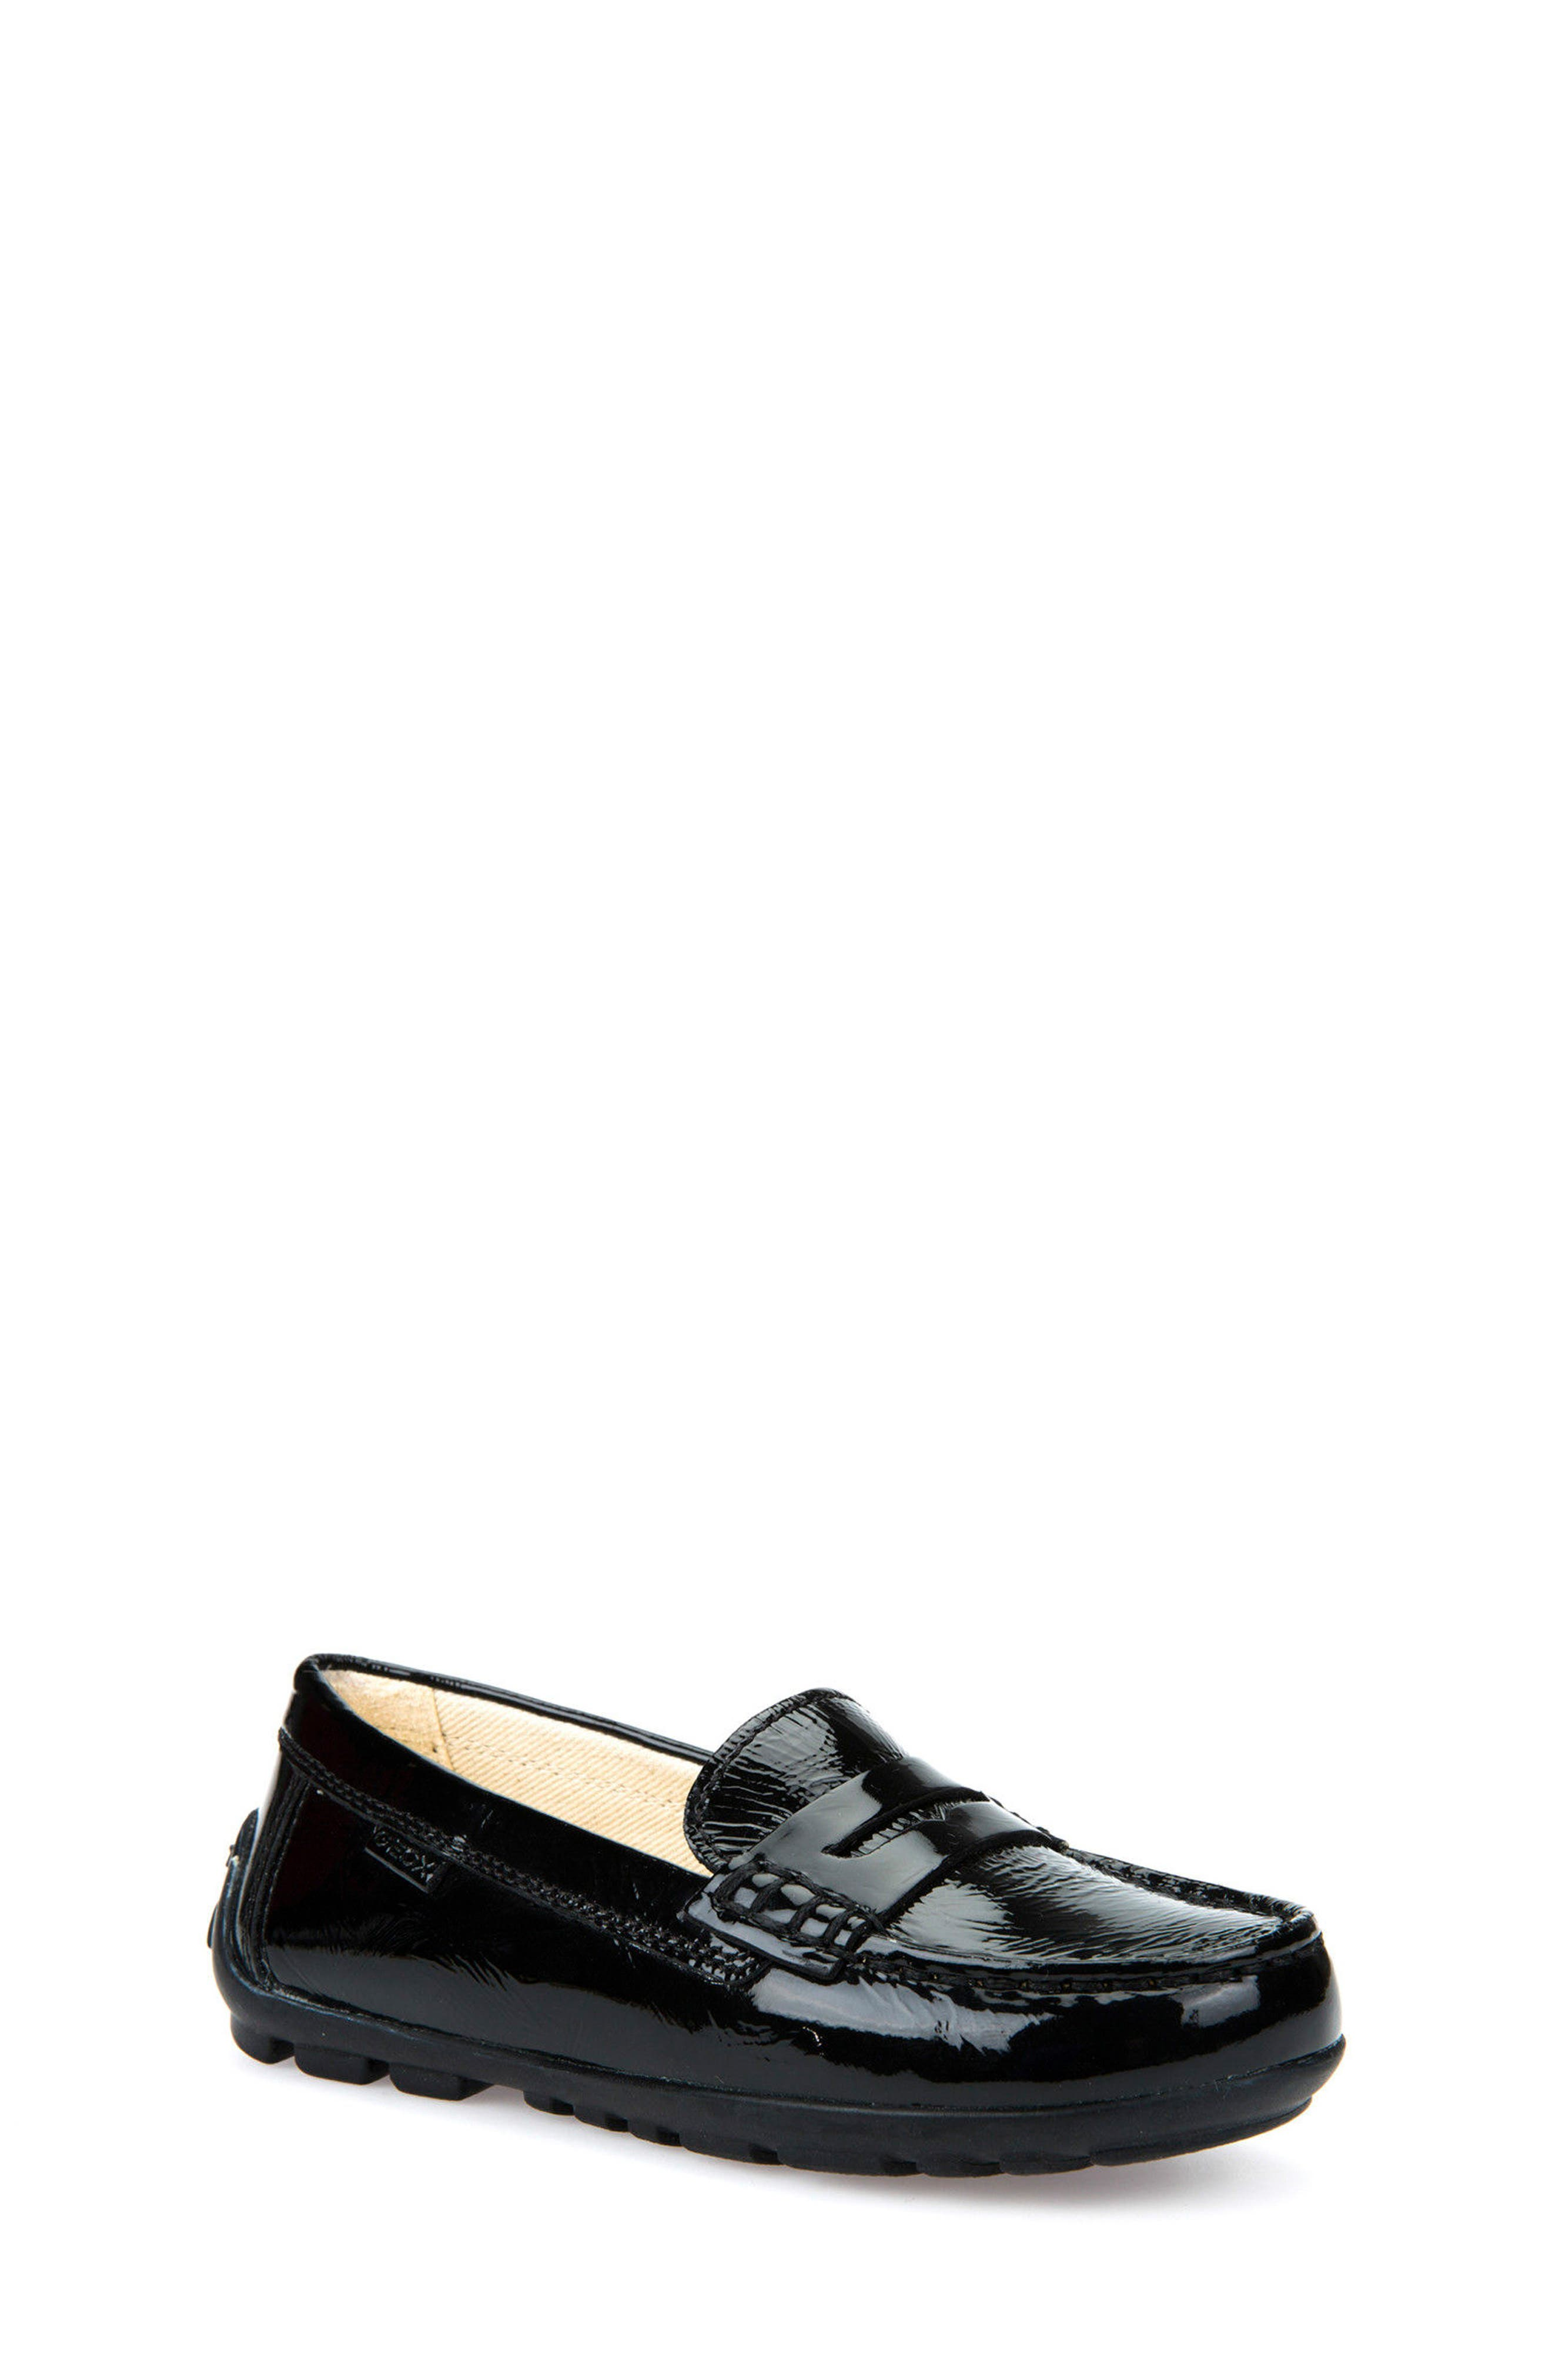 Fast Girl Penny Loafer,                             Main thumbnail 1, color,                             001